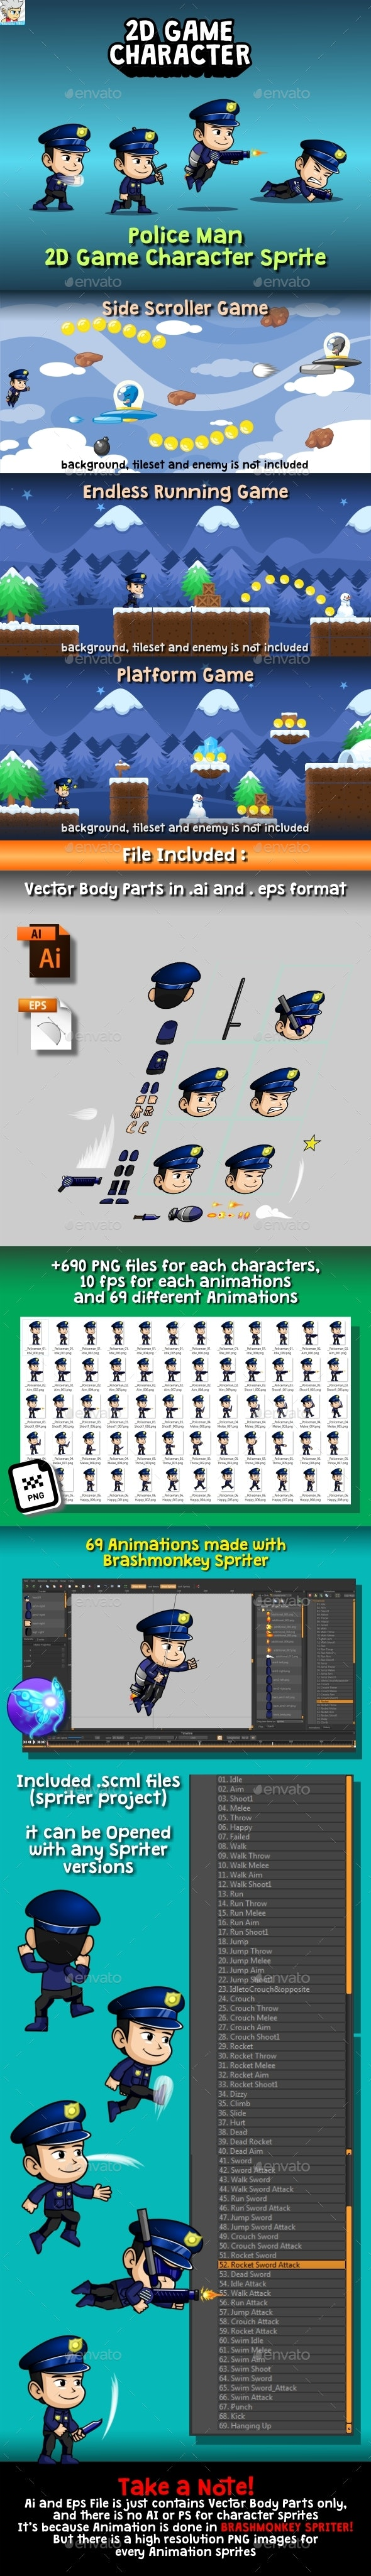 Police Man 2D Game Character Sprite - Sprites Game Assets